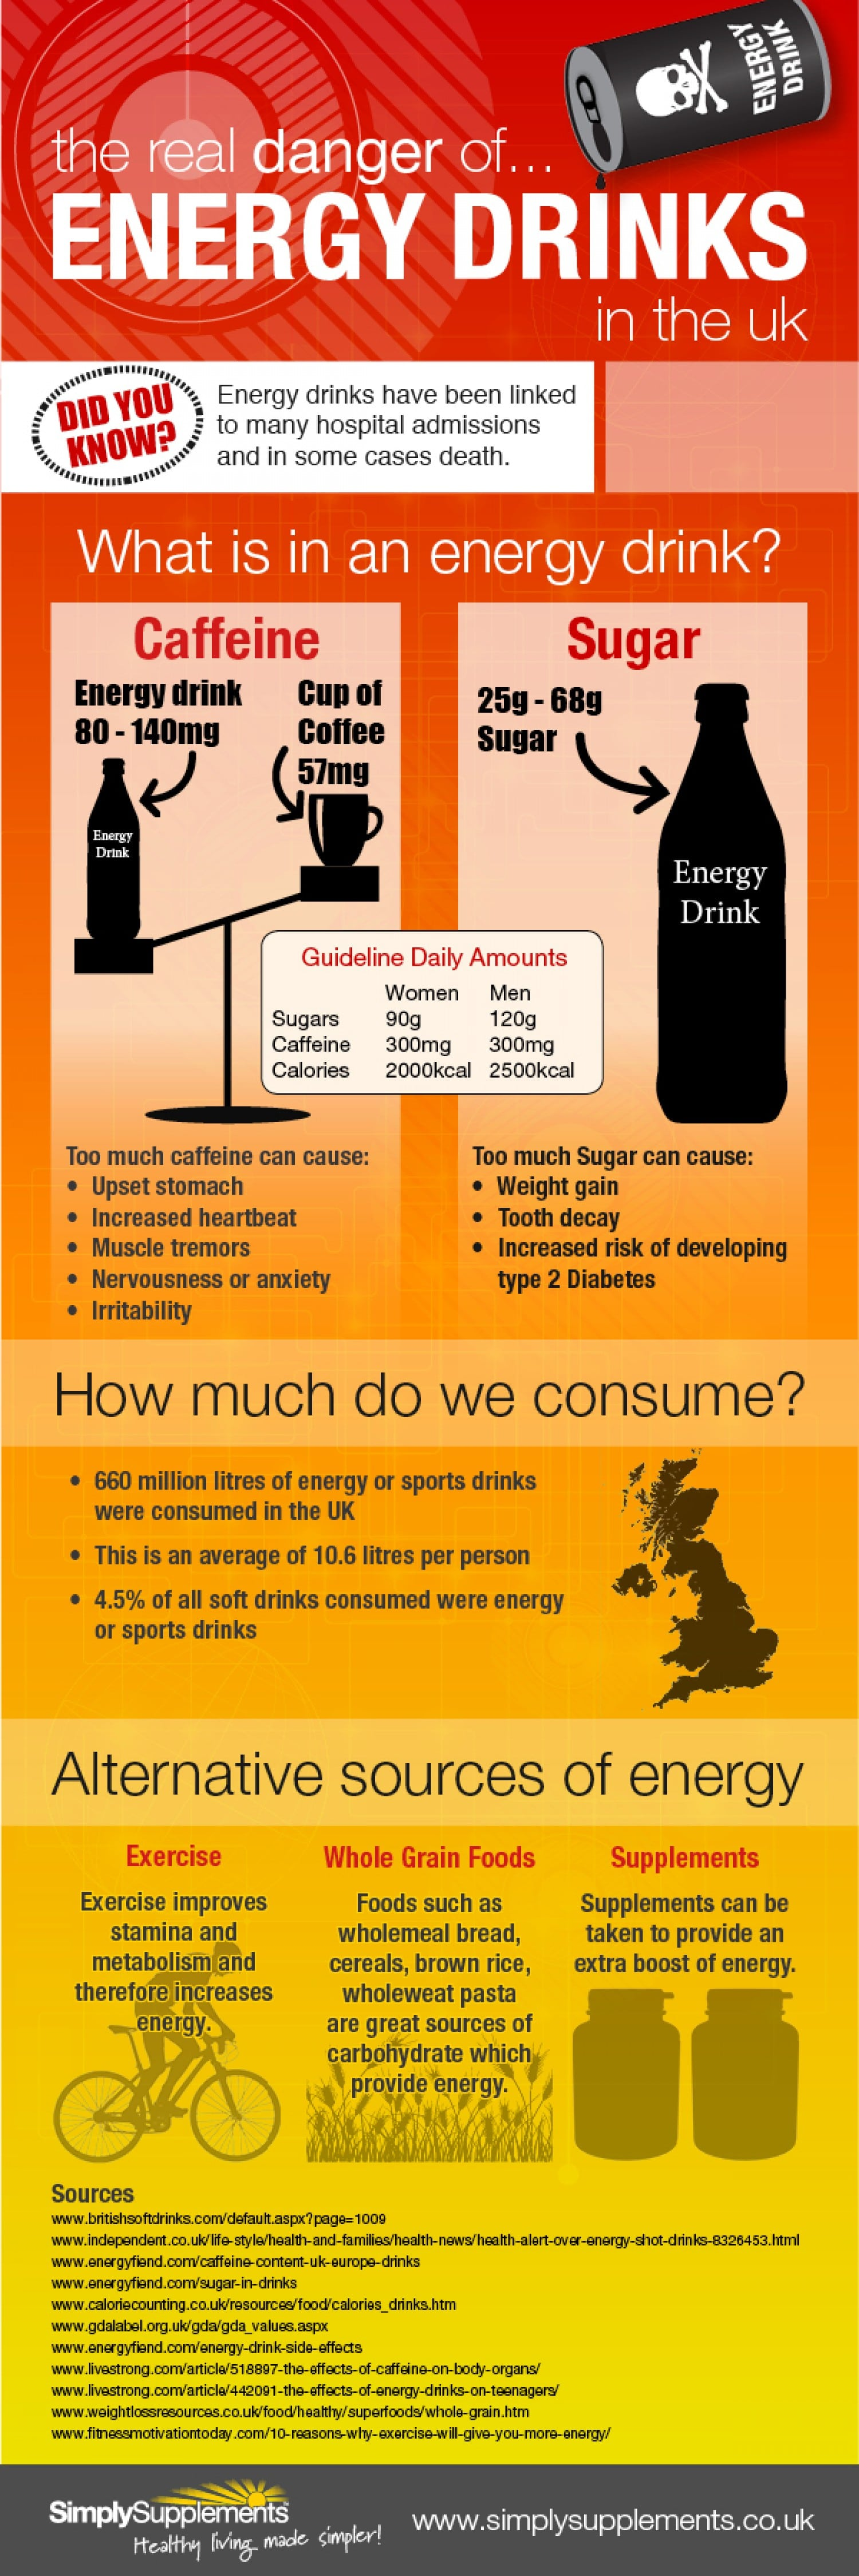 the real dangers of energy drinks